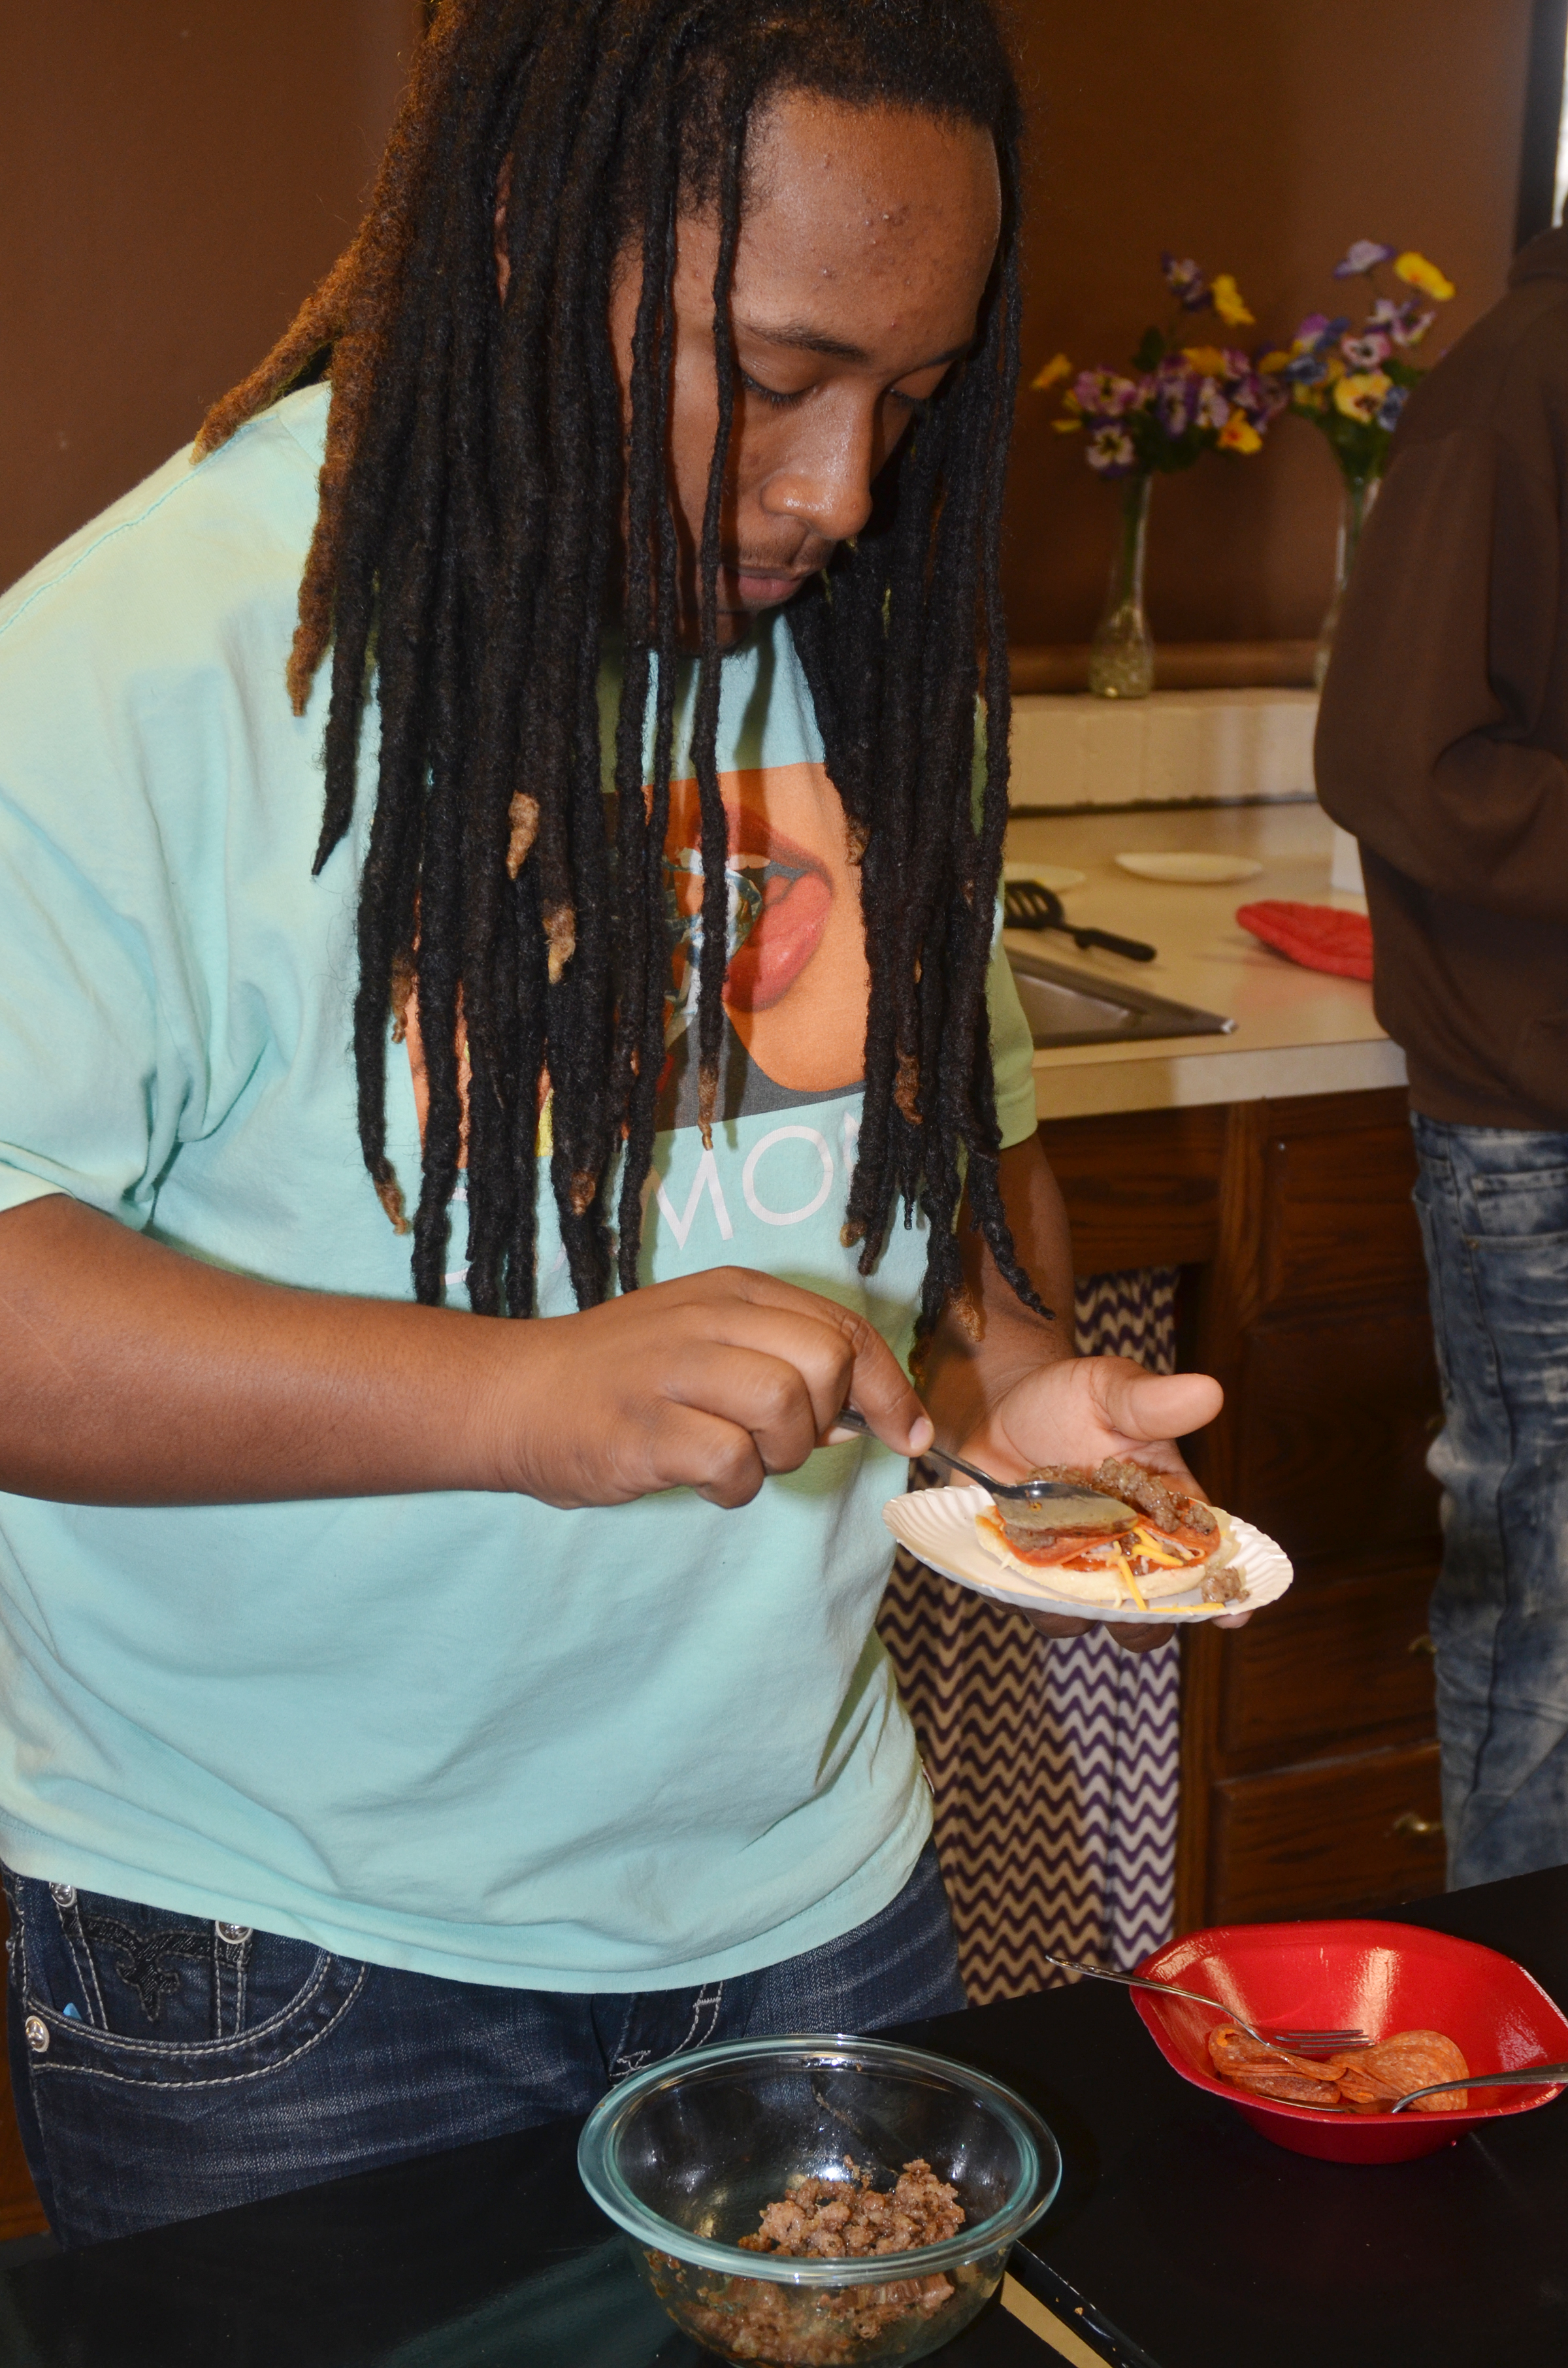 CHS sophomore Ceondre Barnett makes an English muffin pizza.